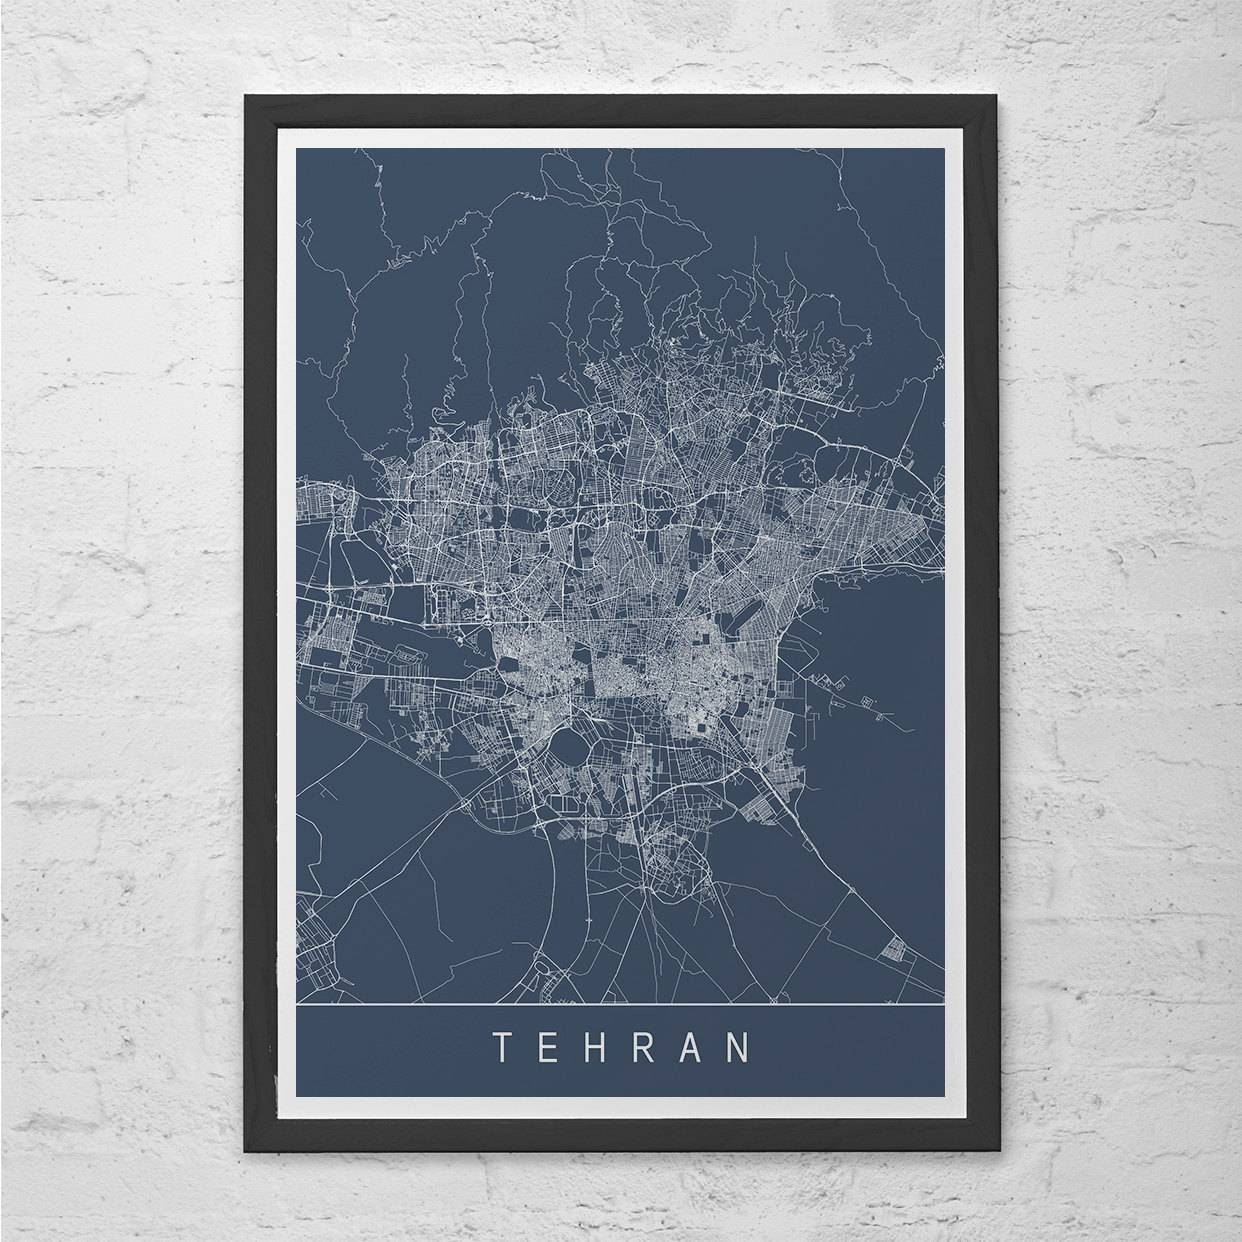 Tehran Map Print Modern City Print Art Customizable City Pertaining To Current City Prints Map Wall Art (View 19 of 20)